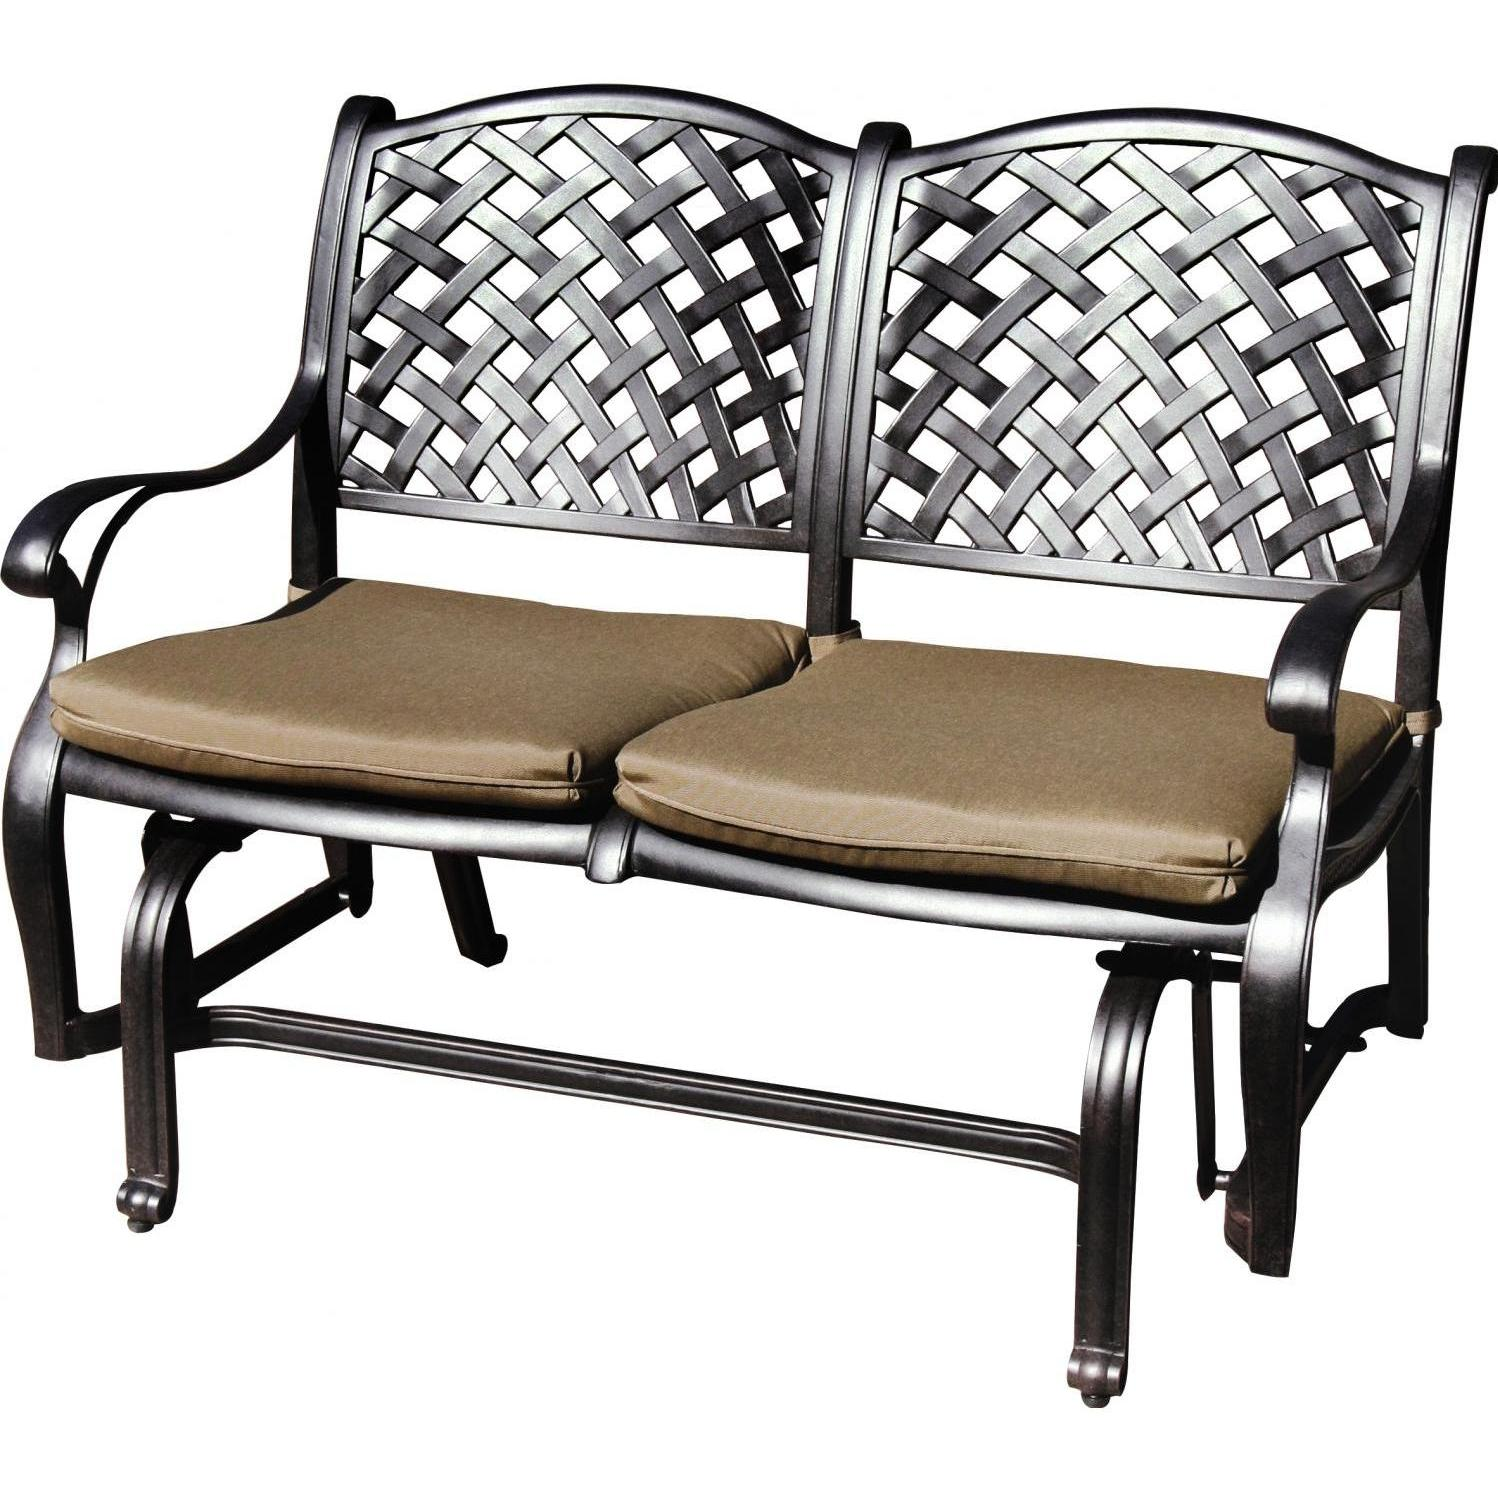 Darlee Nassau Cast Aluminum Patio Bench Glider Resin Patio